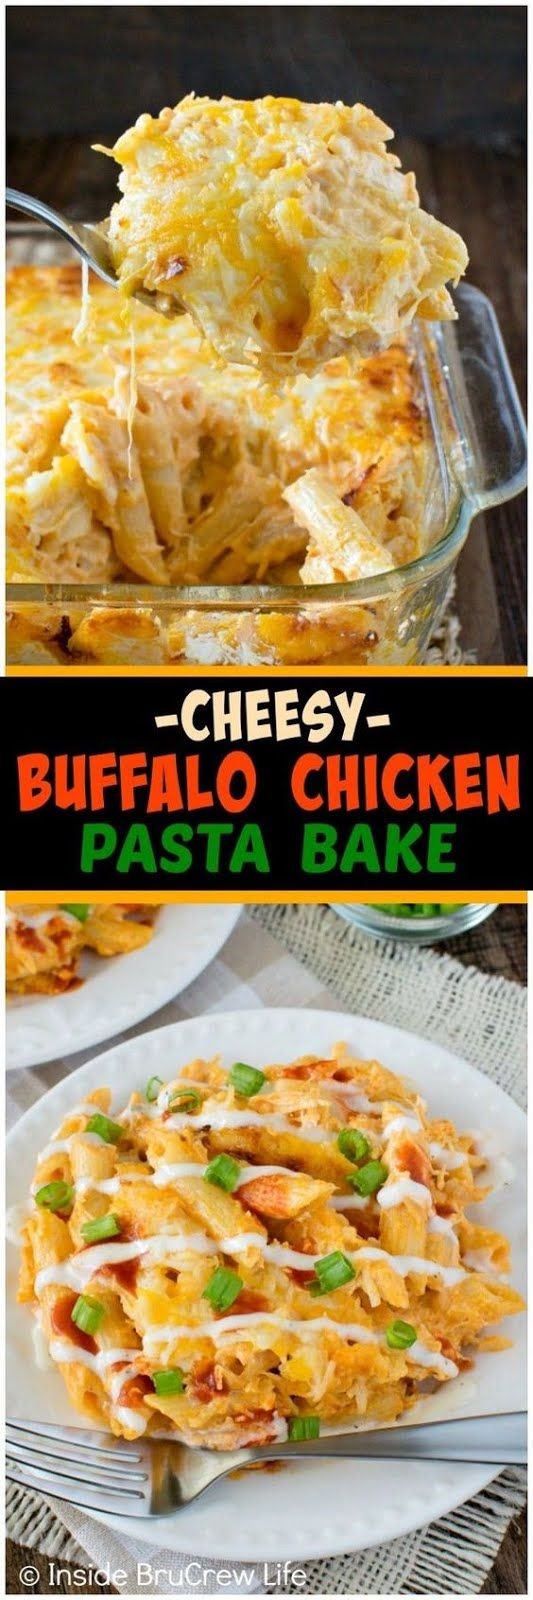 1.Easy Chicken Parmesan Bake 2.Balsamic Chicken with Mushrooms and Thyme 3.One Pan Honey Garlic Chicken and Veggies 4. Lemon Garlic Chicken Potato Bake 5.One Pan Baked Salmon & Vegetables 6.One Dish Garlic & Herb Pork Tenderloin 7.One Pot Cheesy Taco Zucchini Noodle Skillet 8.One-Pan Butternut Squash Penne 9.Sweet Potato and Sausage Quinoa Bake 10.(One…Continue reading ➞ The Biggest List of Easy One Dish Meals!